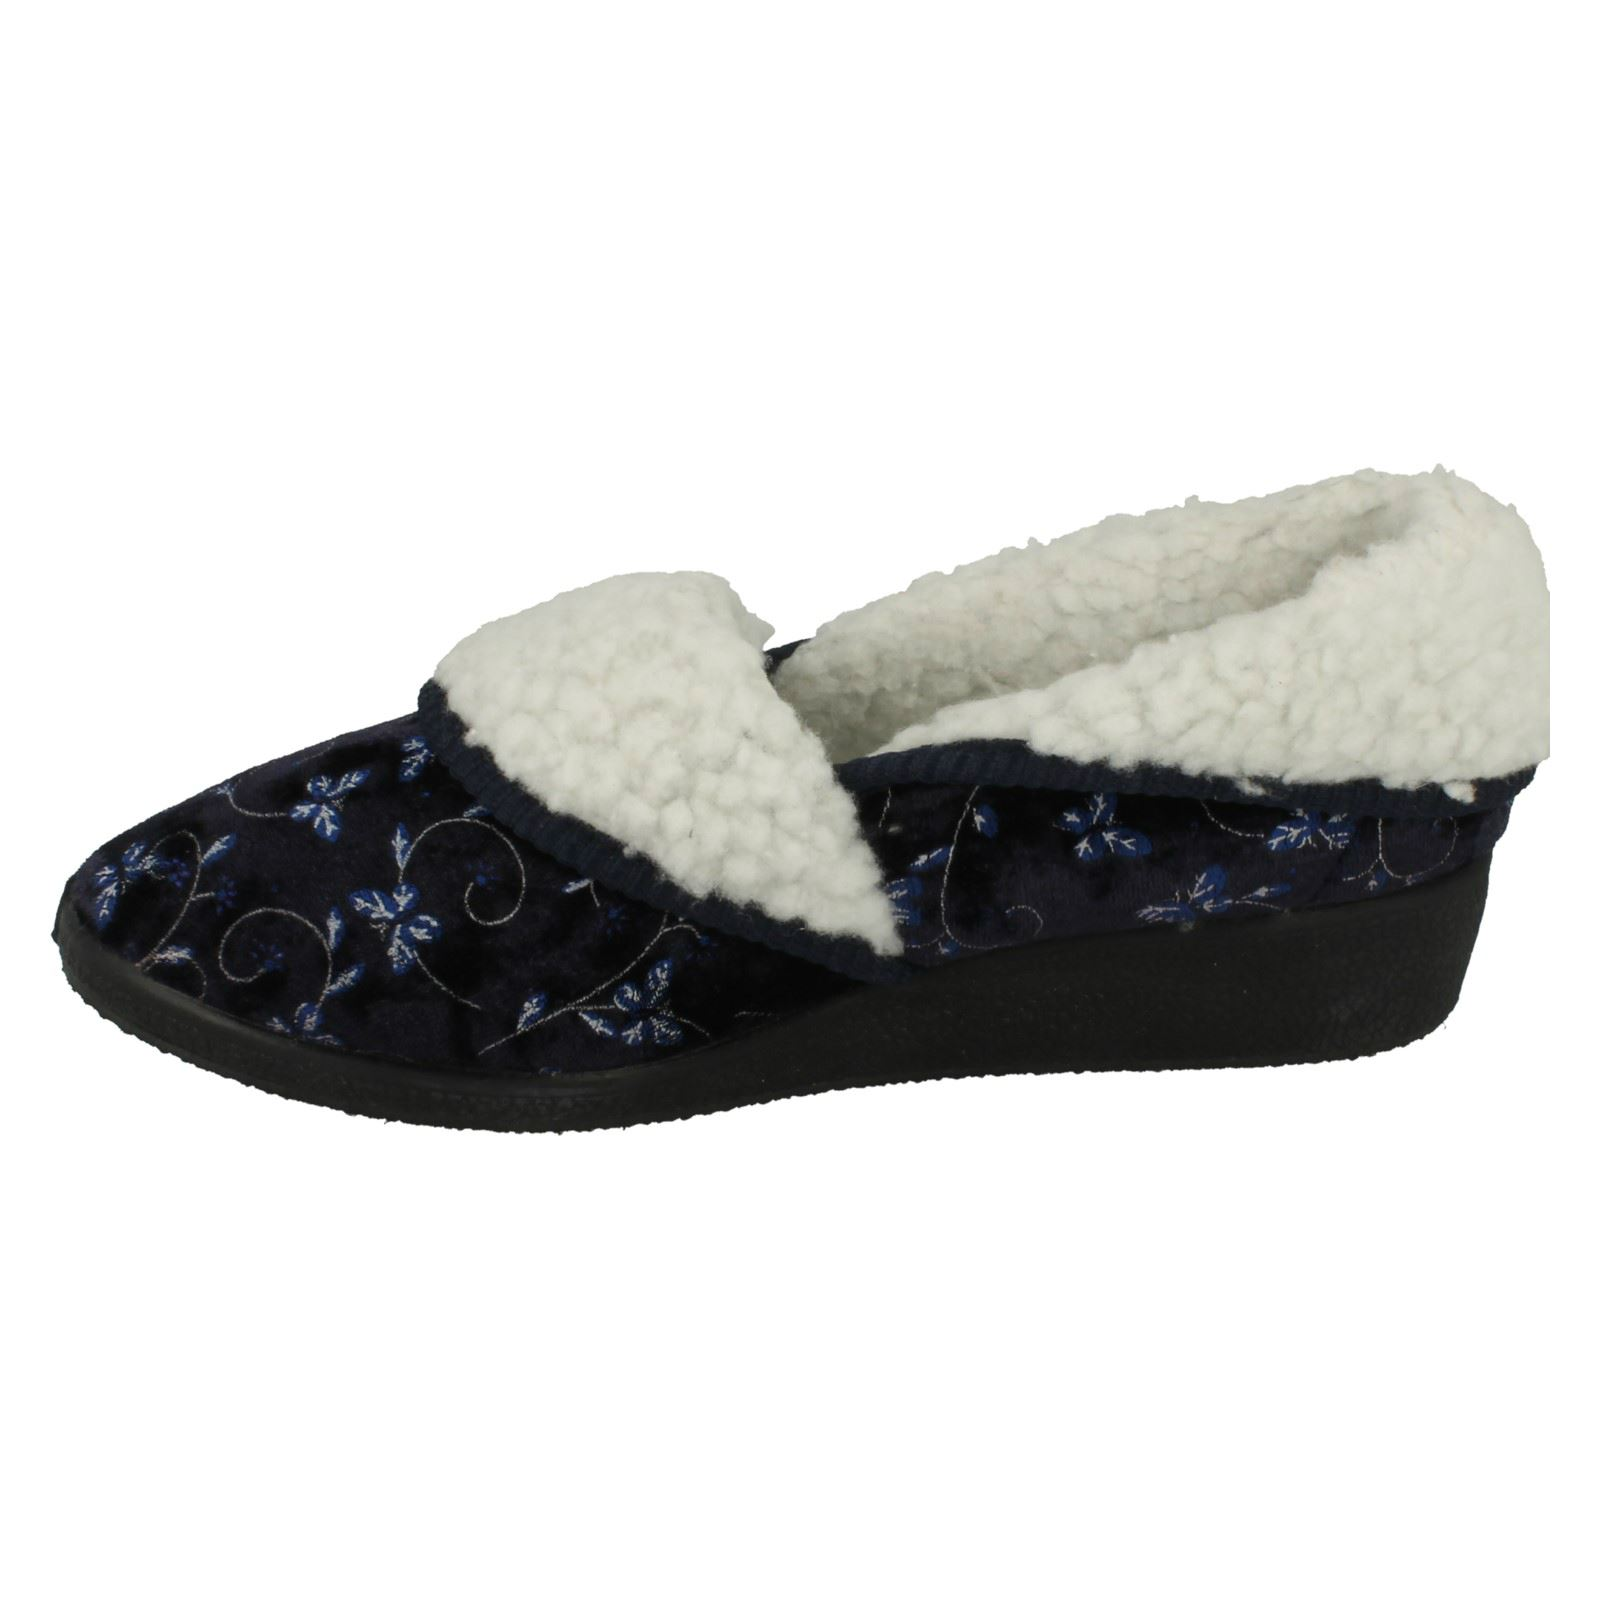 Ladies-Four-Seasons-House-Slippers-Edith thumbnail 14